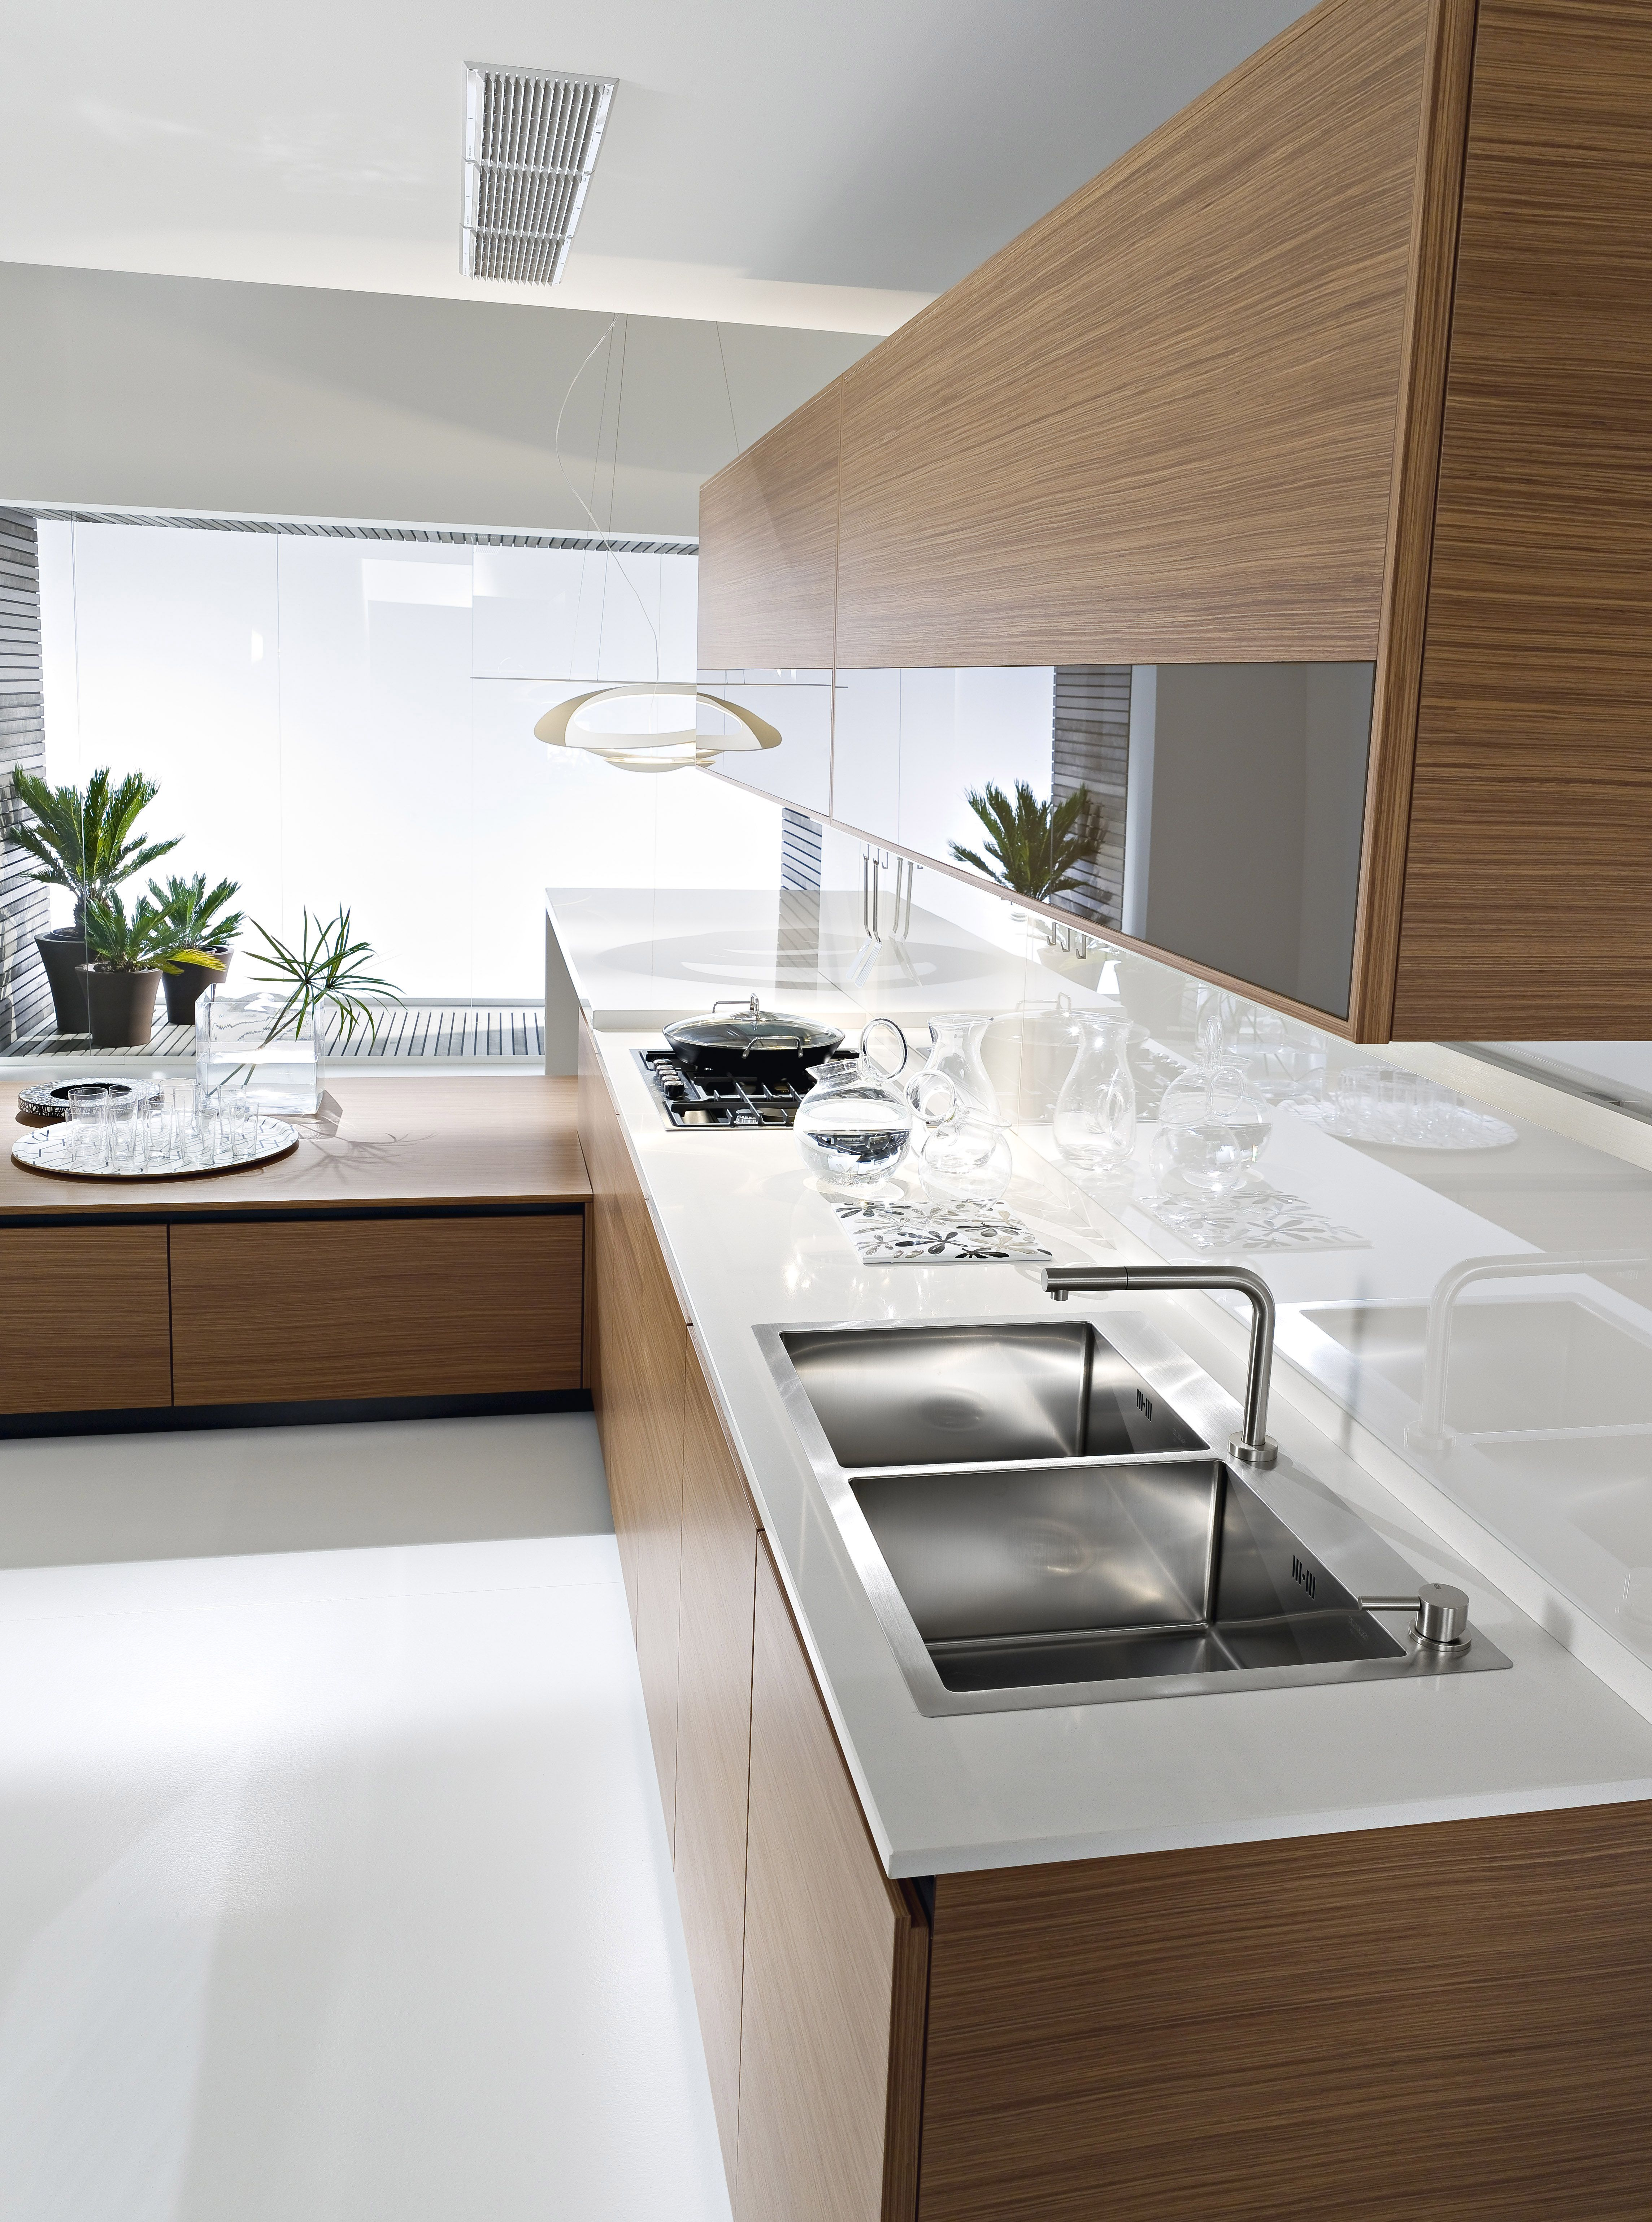 Italian Kitchen Cabinets And Design In New York City